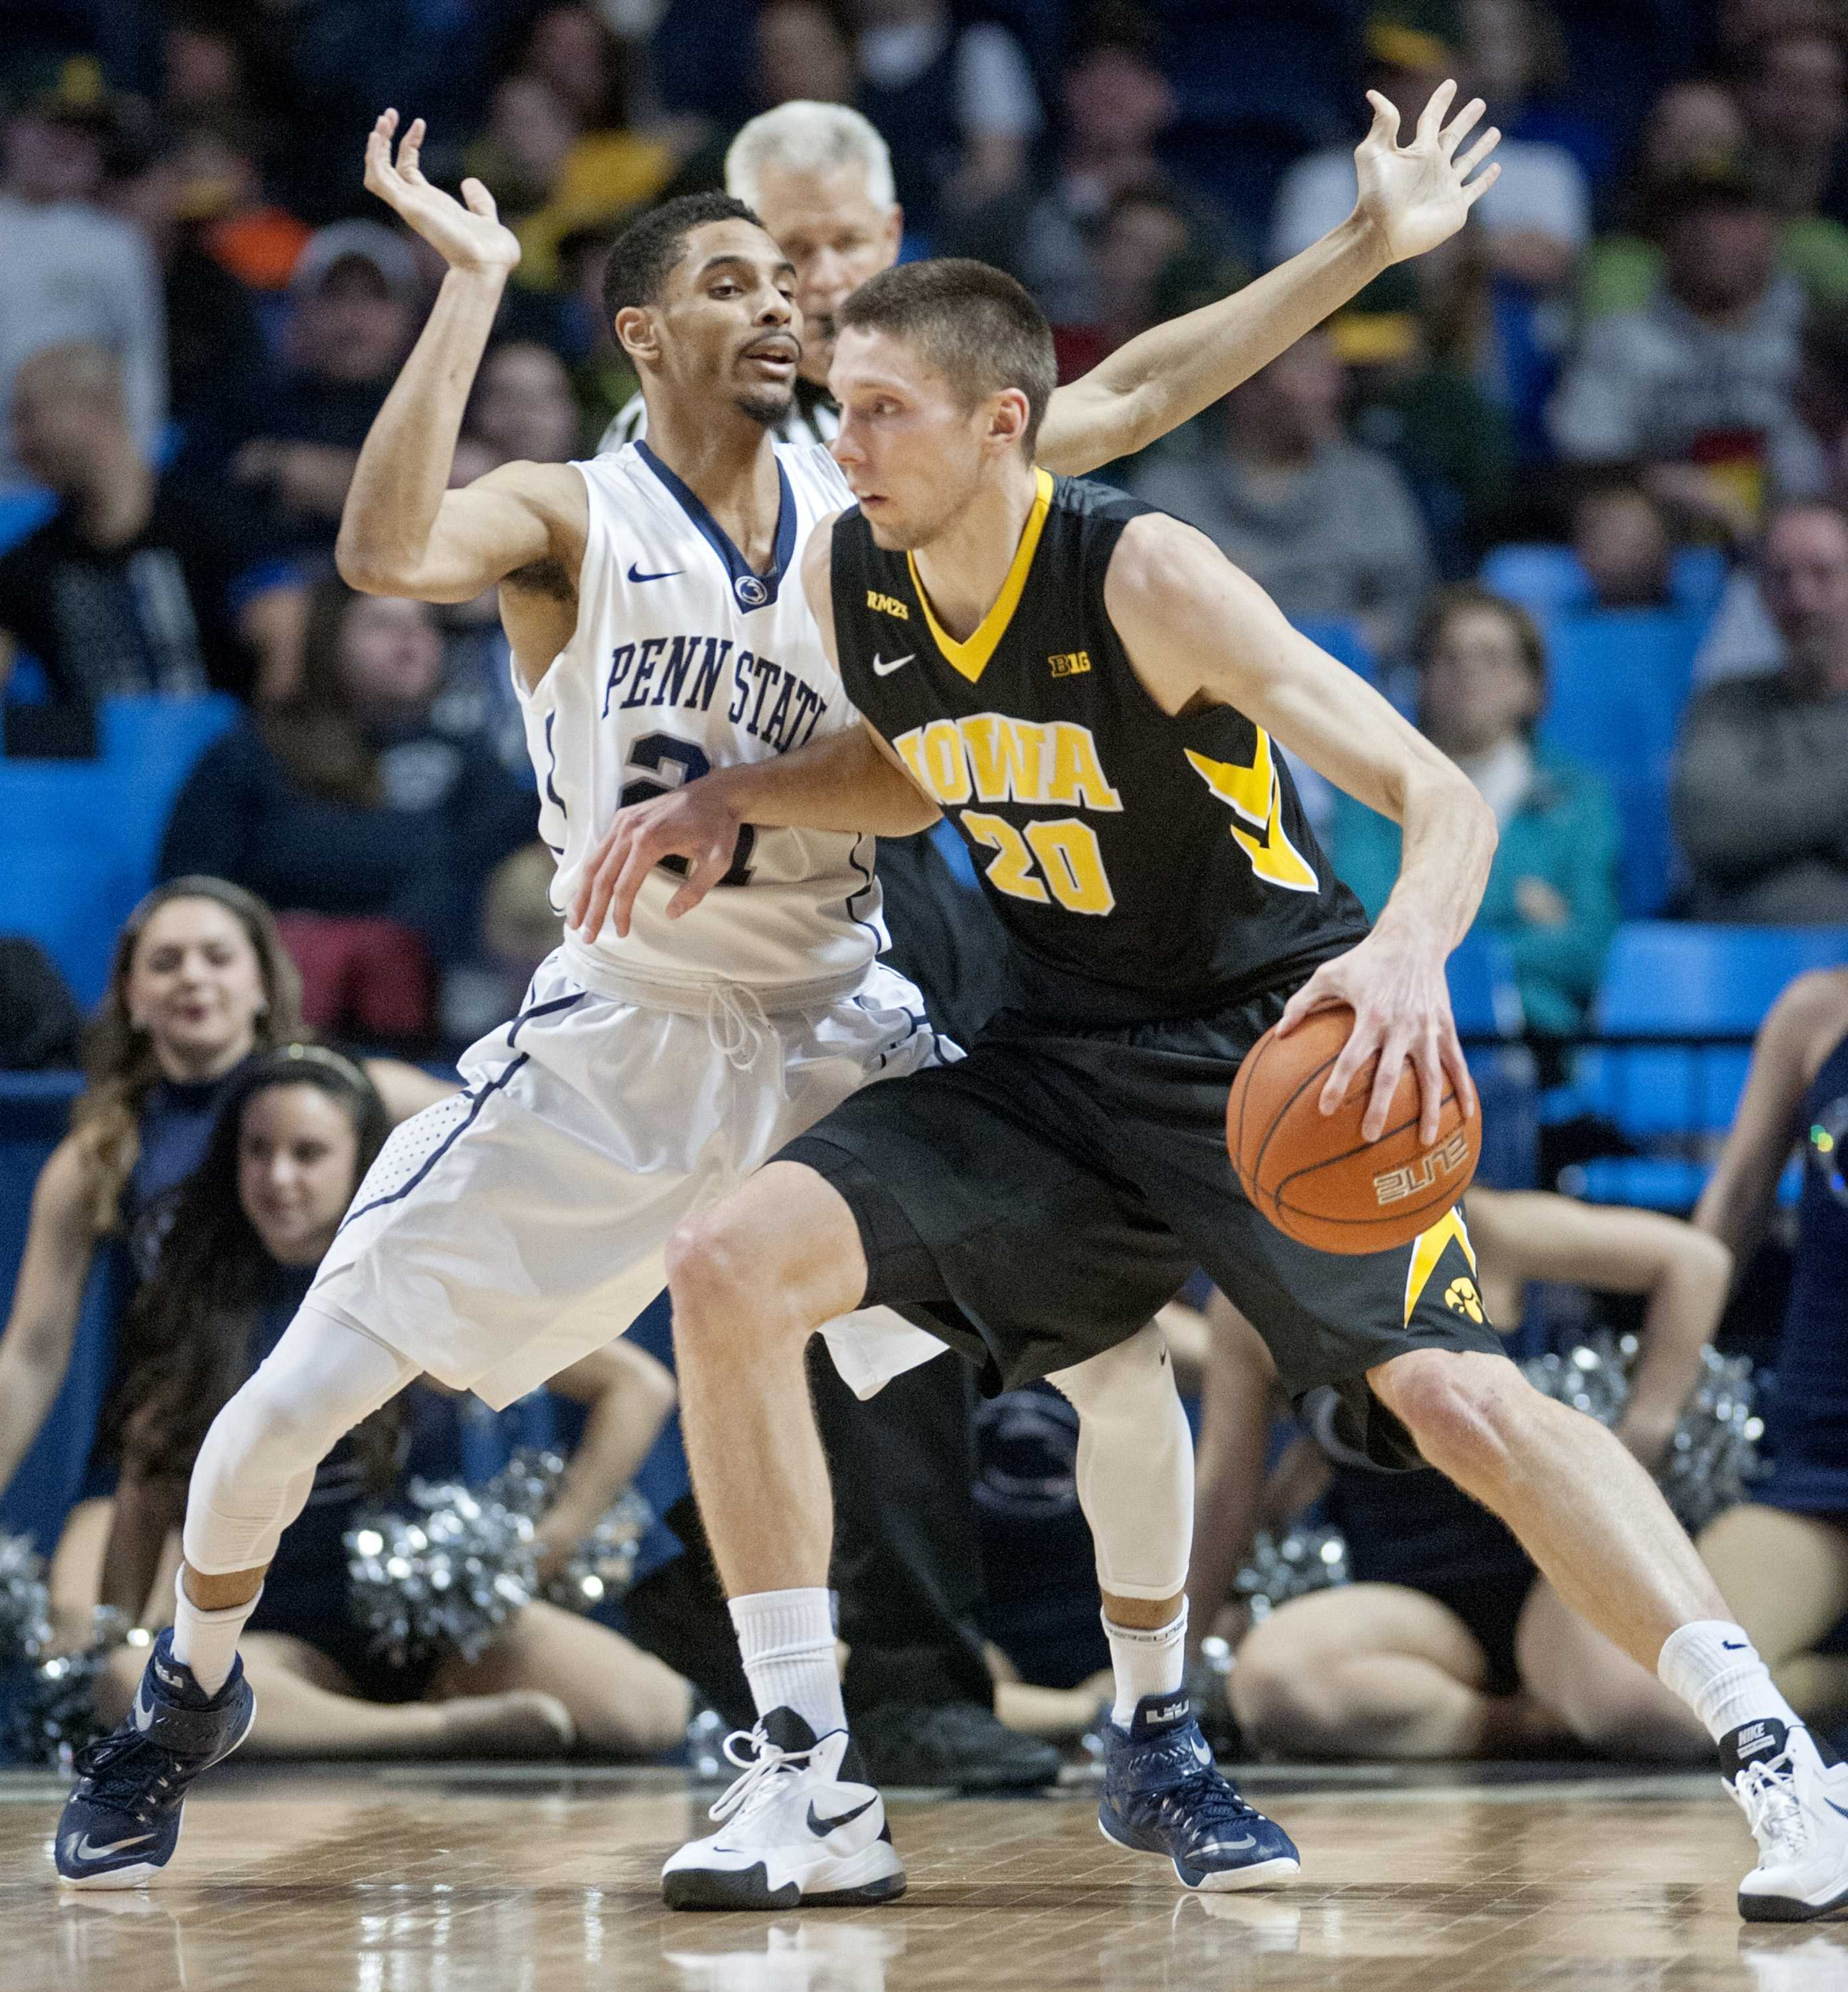 Iowa's Jarrod Uthoff, right, works off the dribble against Penn State's Isaiah Washington on Wednesday, Feb. 17, 2016, at the Bryce Jordan Center in University Park, Pa. The Nittany Lions upset Iowa, 79-75. (Abby Drey/Centre Daily Times/TNS)